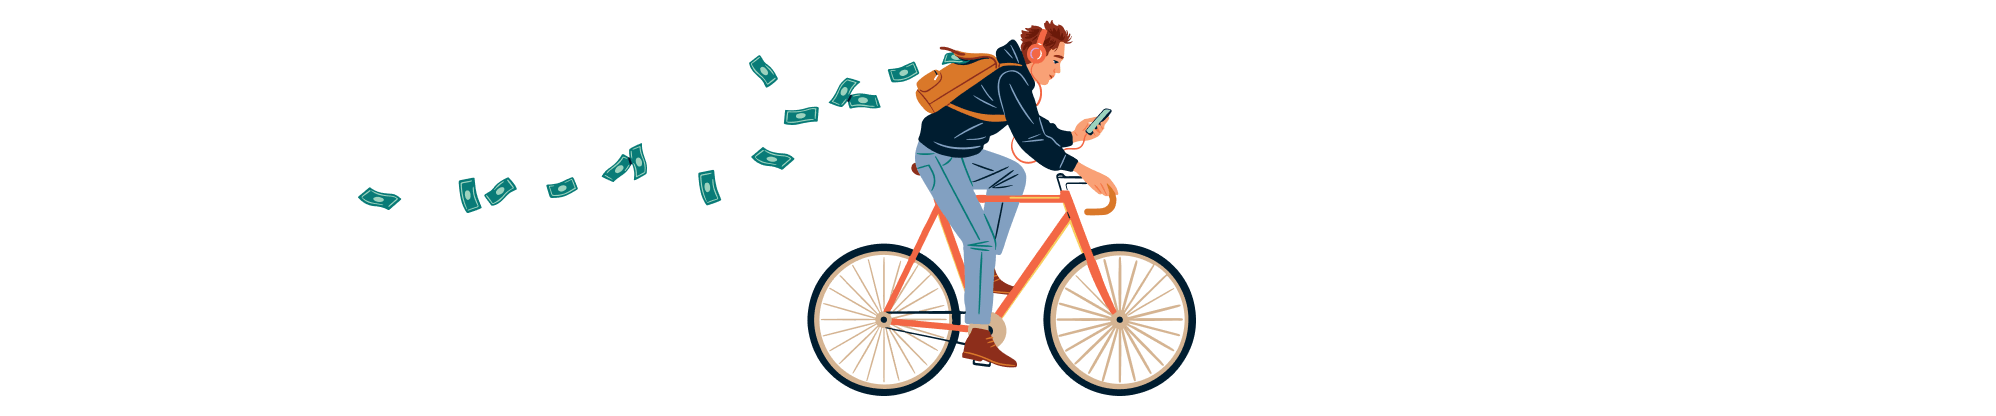 Illustration of man riding a bicycle while reading his phone while money flies out of his backpack.